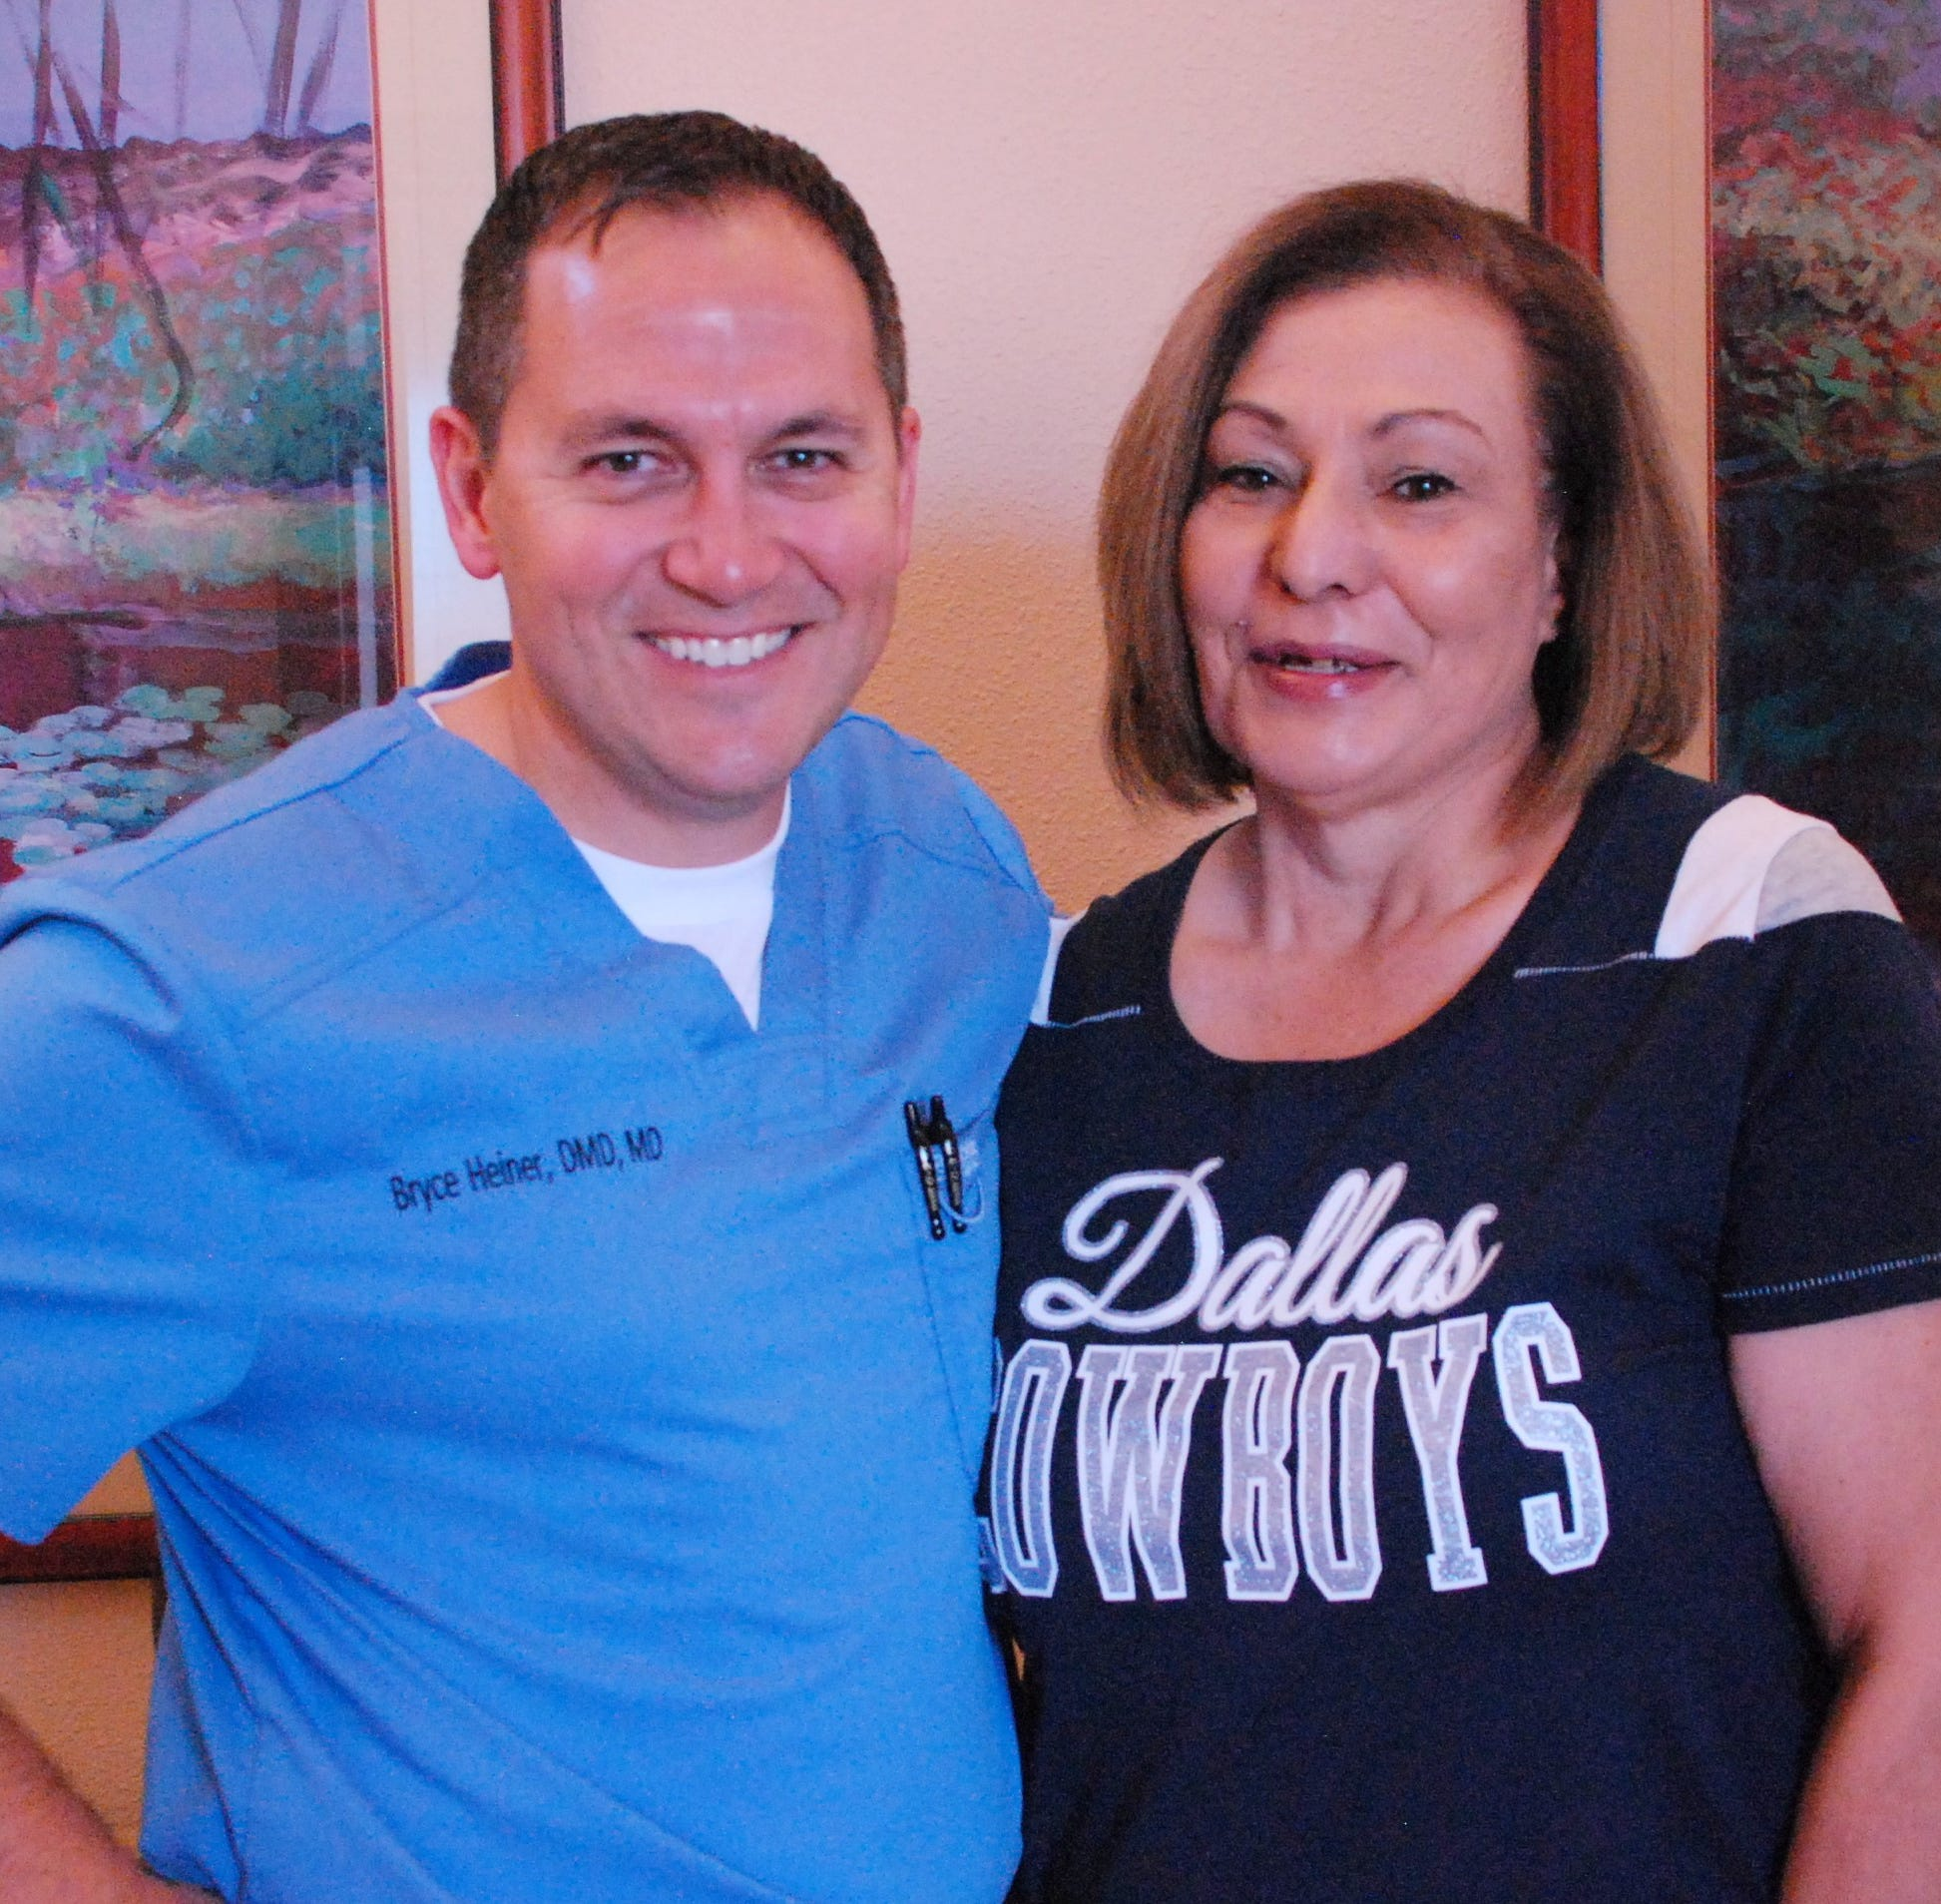 Ruidoso dentist part of team that gives woman a $50,000 smile